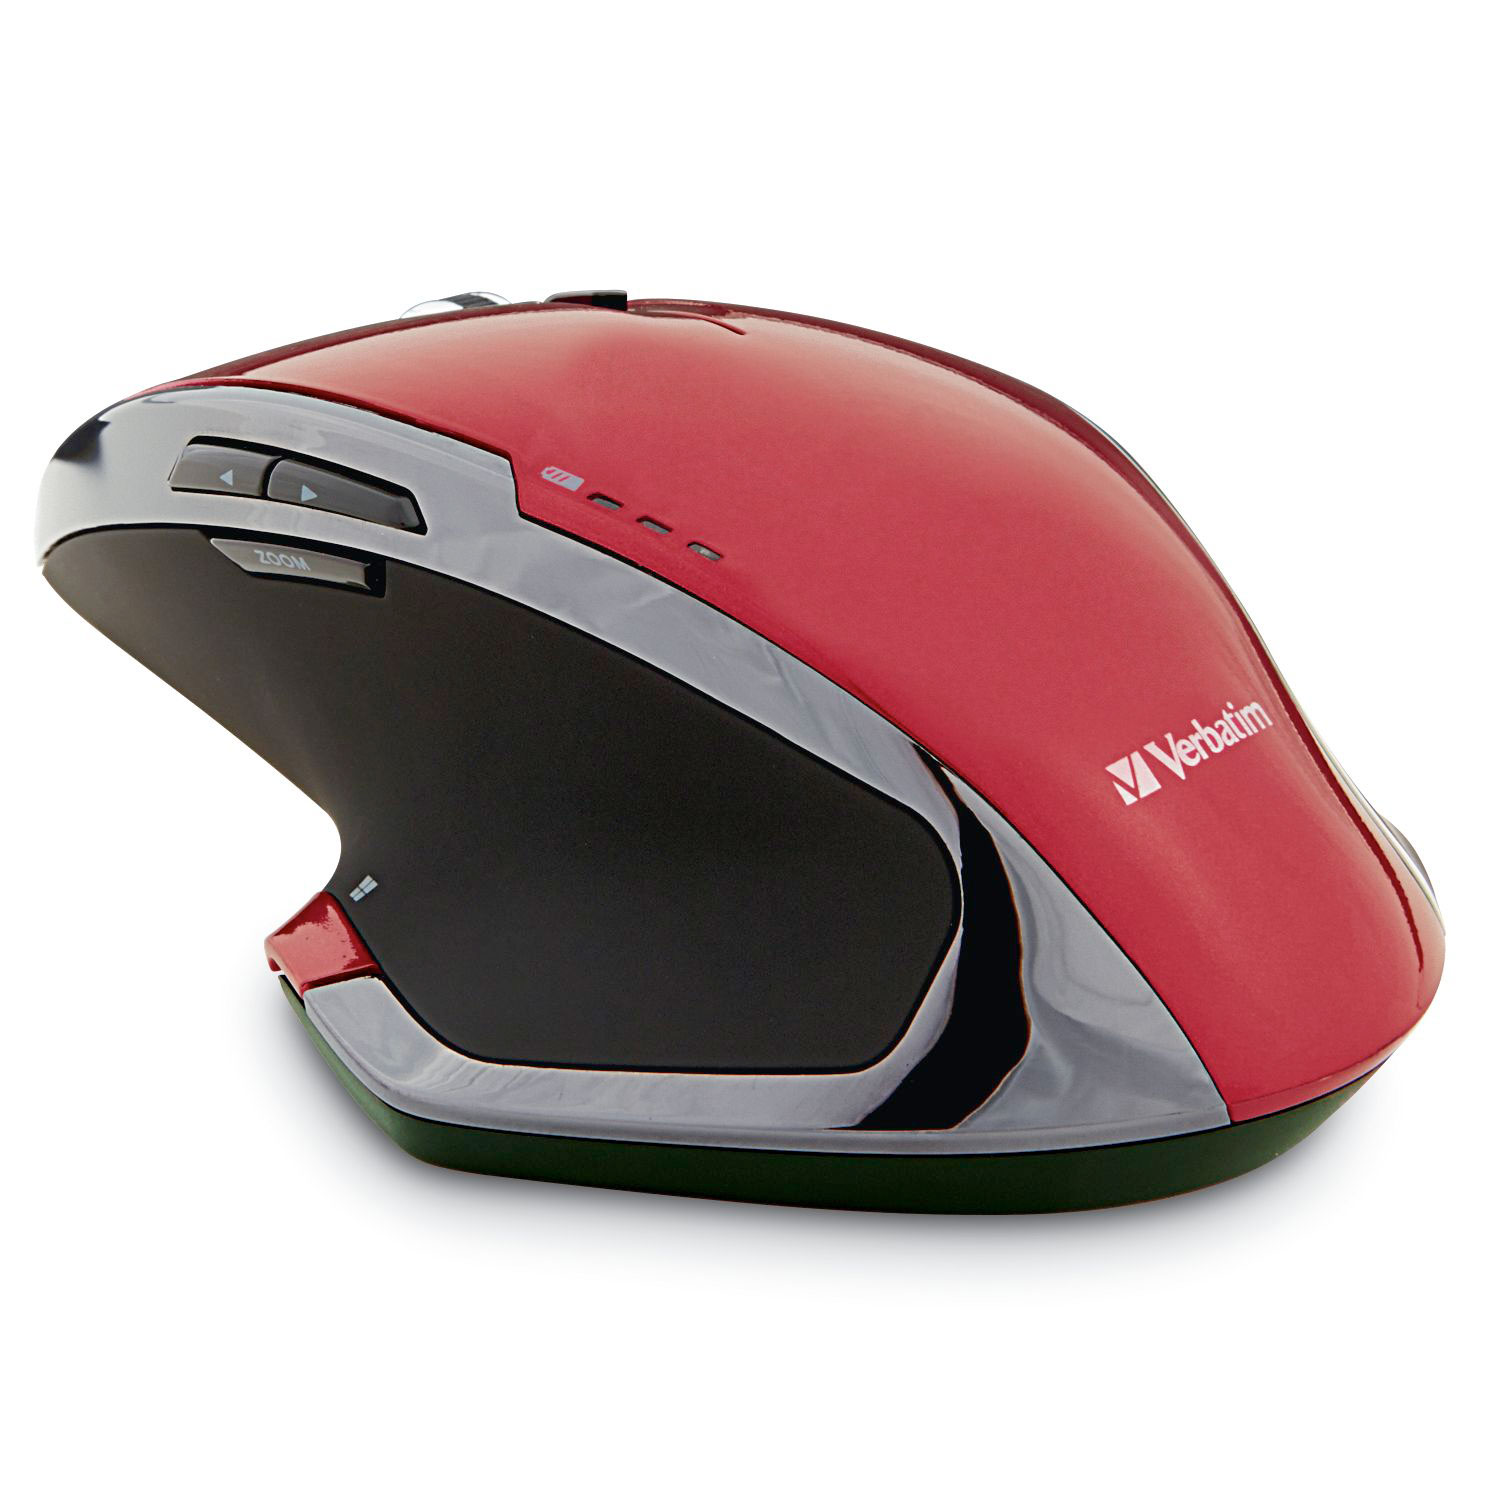 Verbatim Wireless Desktop 8-Button Deluxe Blue, LED Mouse, 99021, Red